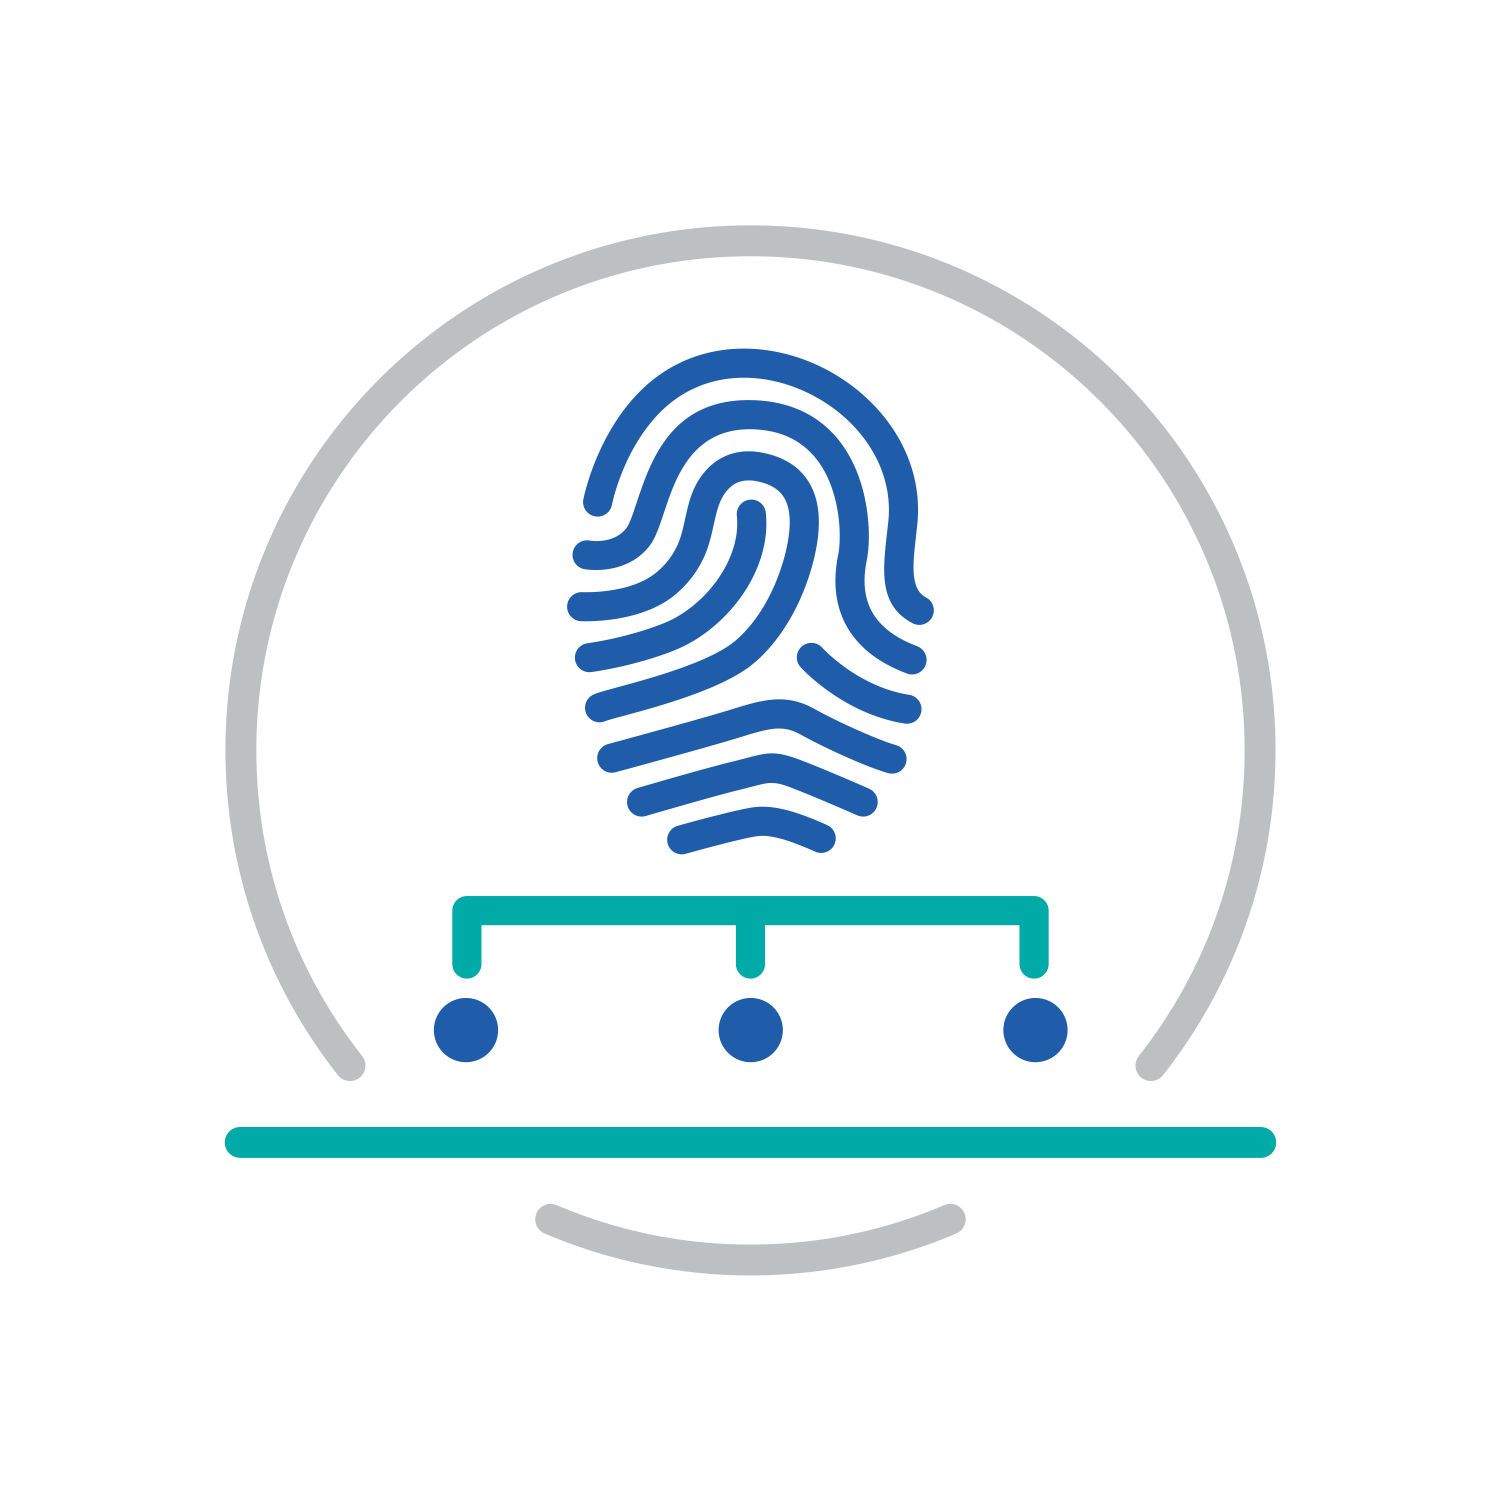 https://www.ducem.in/wp-content/uploads/2021/09/66-EASILY-INTEGRATE-WITH-ANY-BIOMETRIC.png